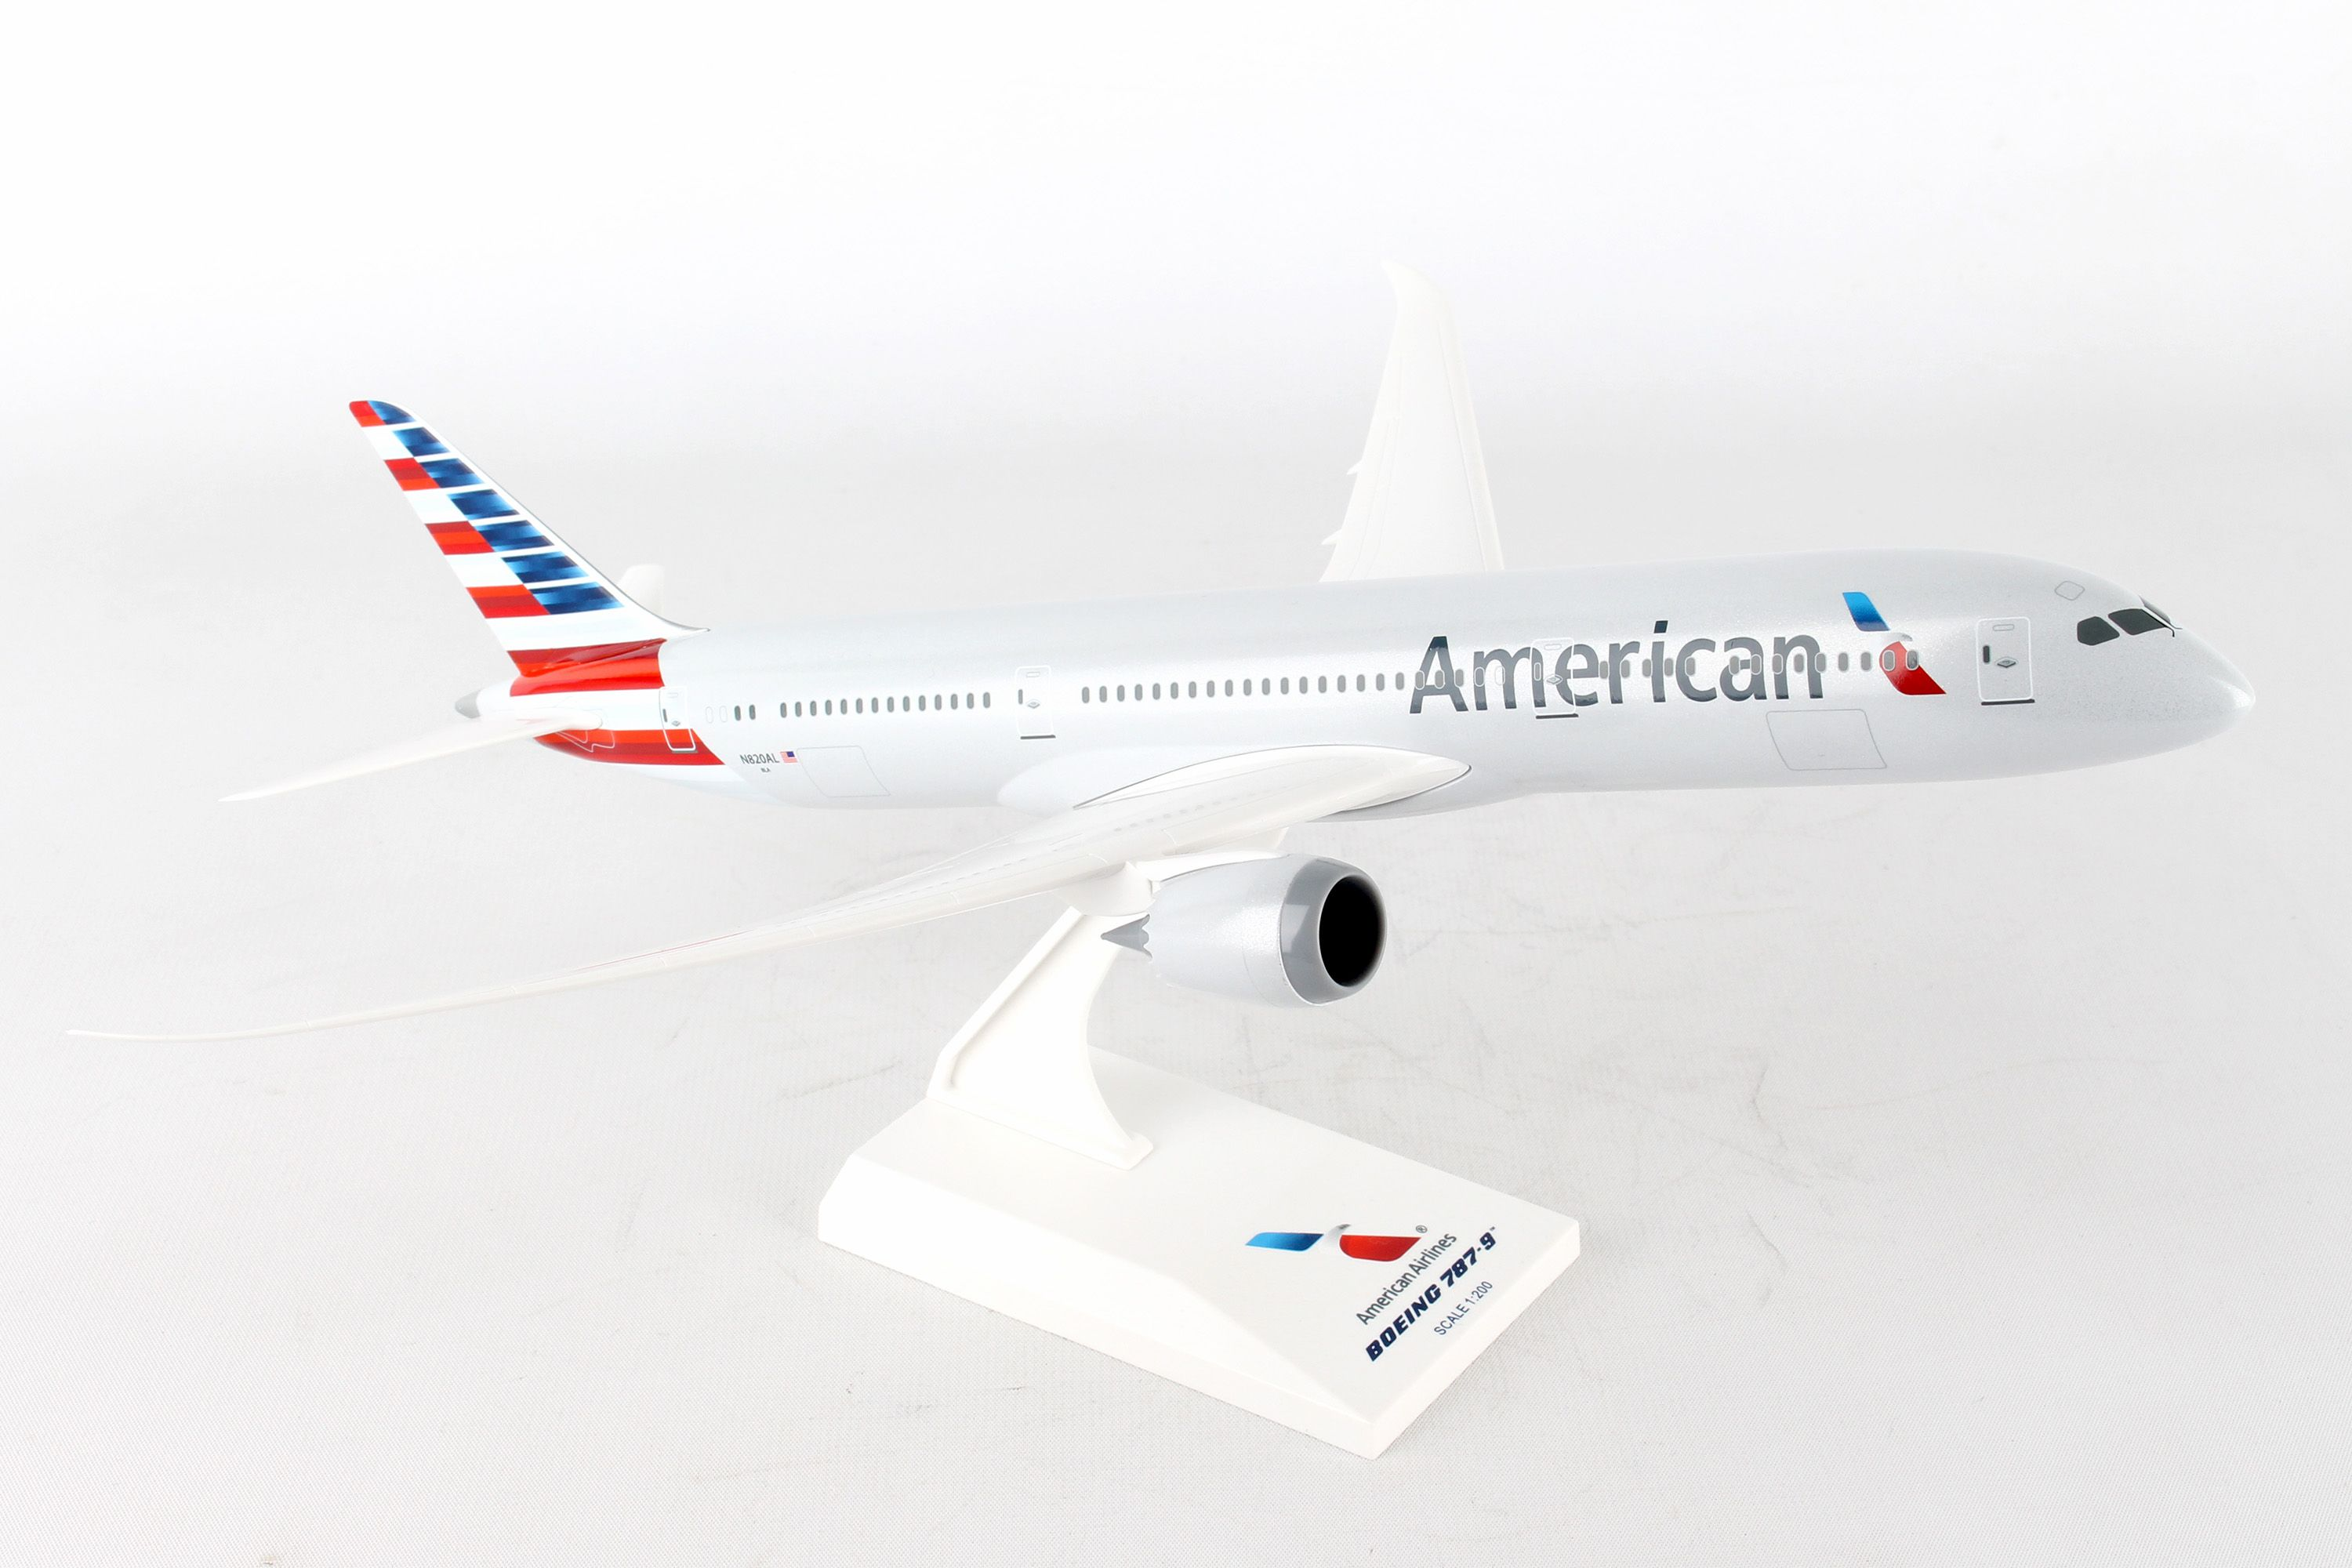 SkyMarks Flugzeugmodell American Airlines Boeing 787-9 Maßstab 1:200